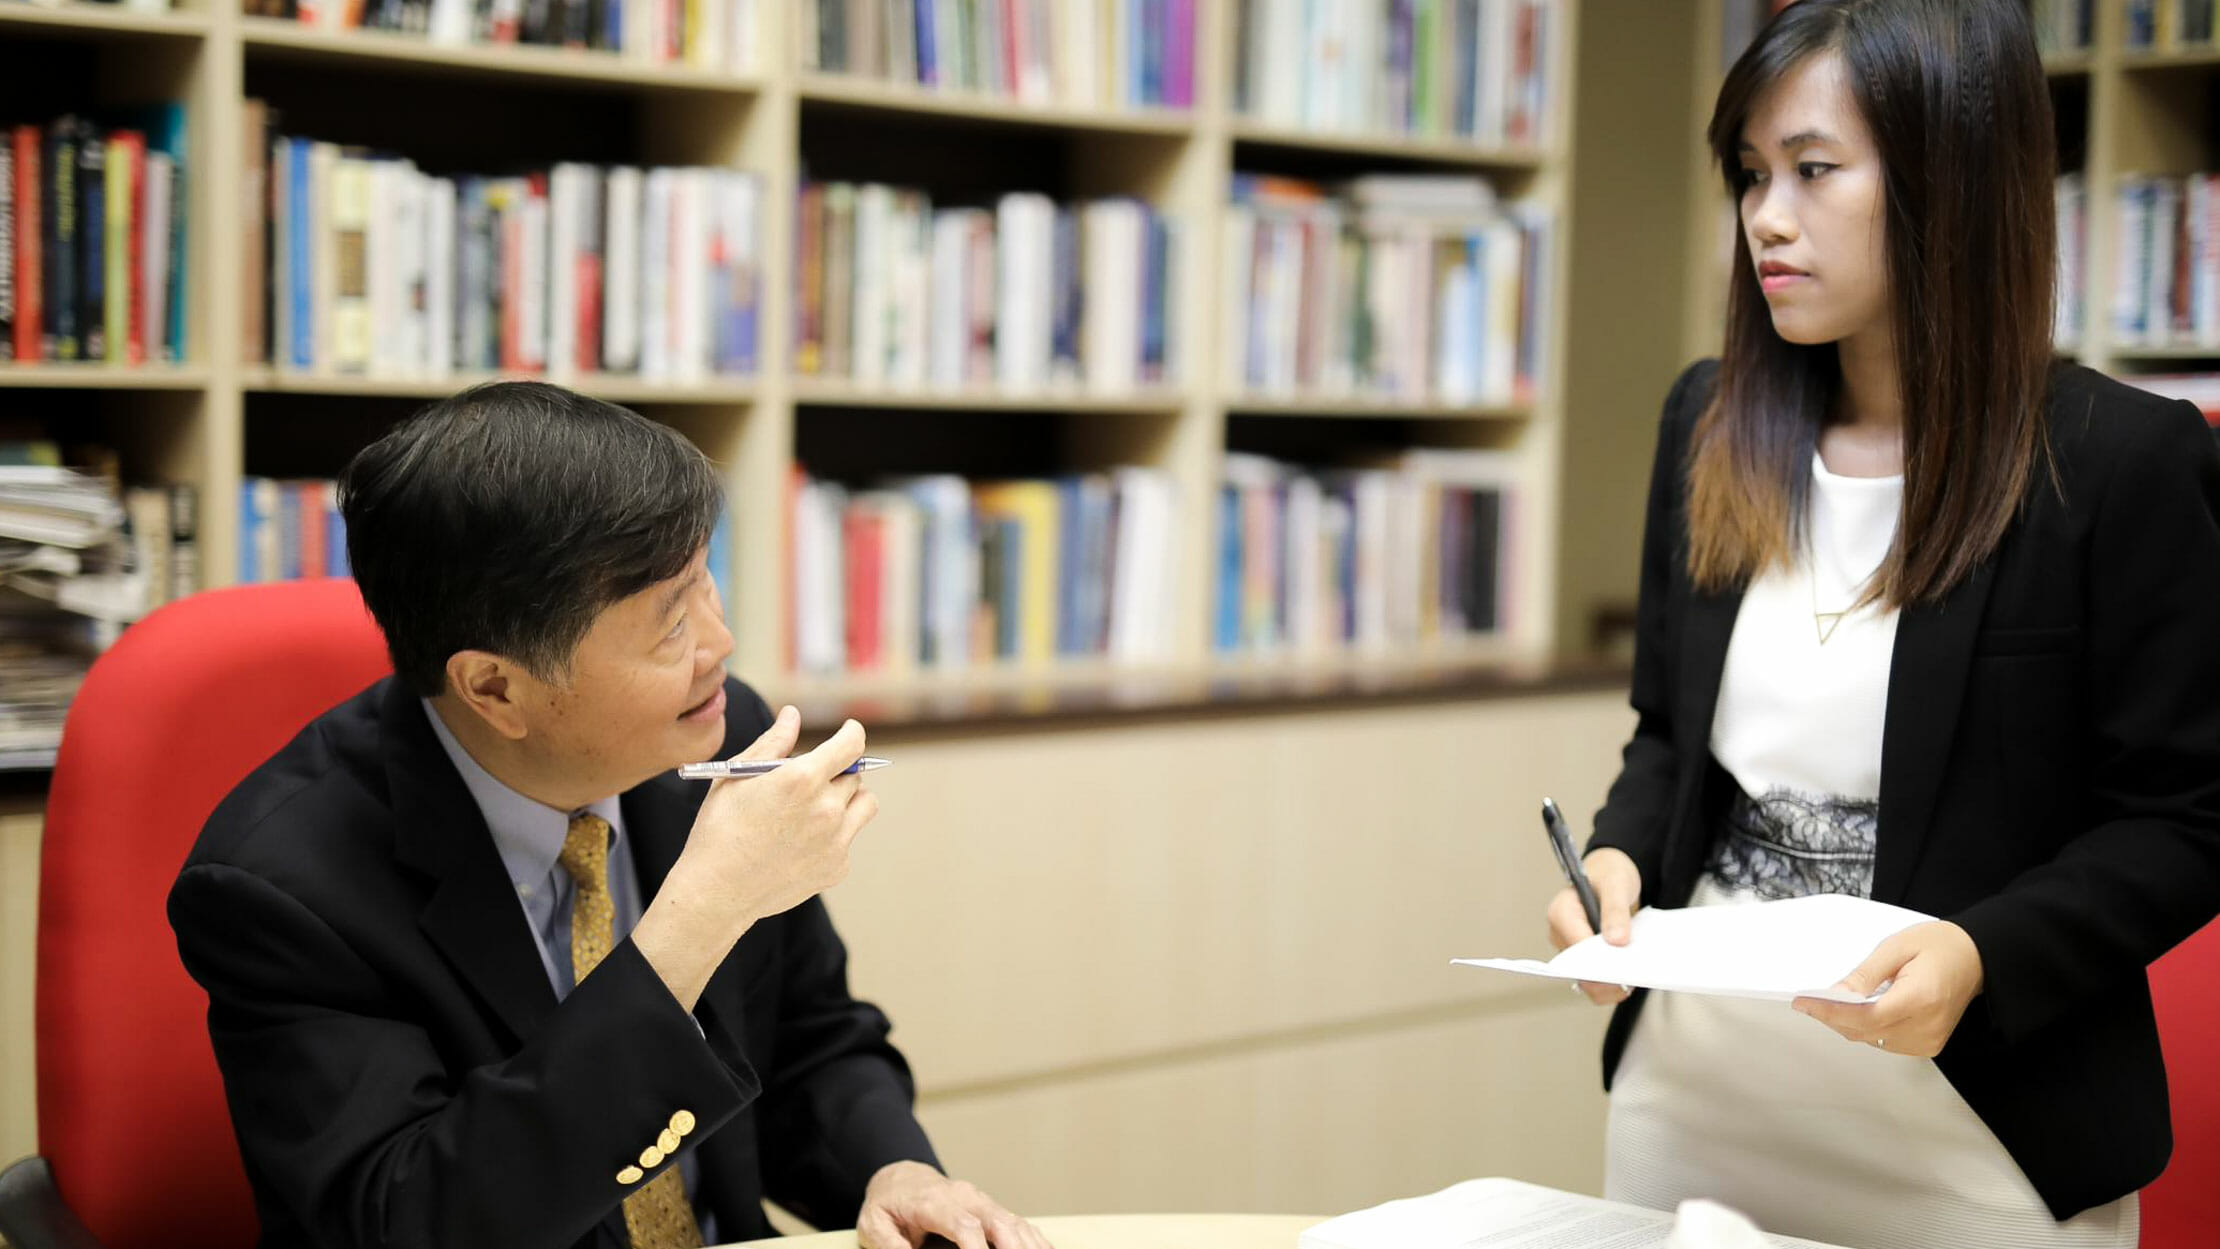 Man sitting at table while standing woman holds papers